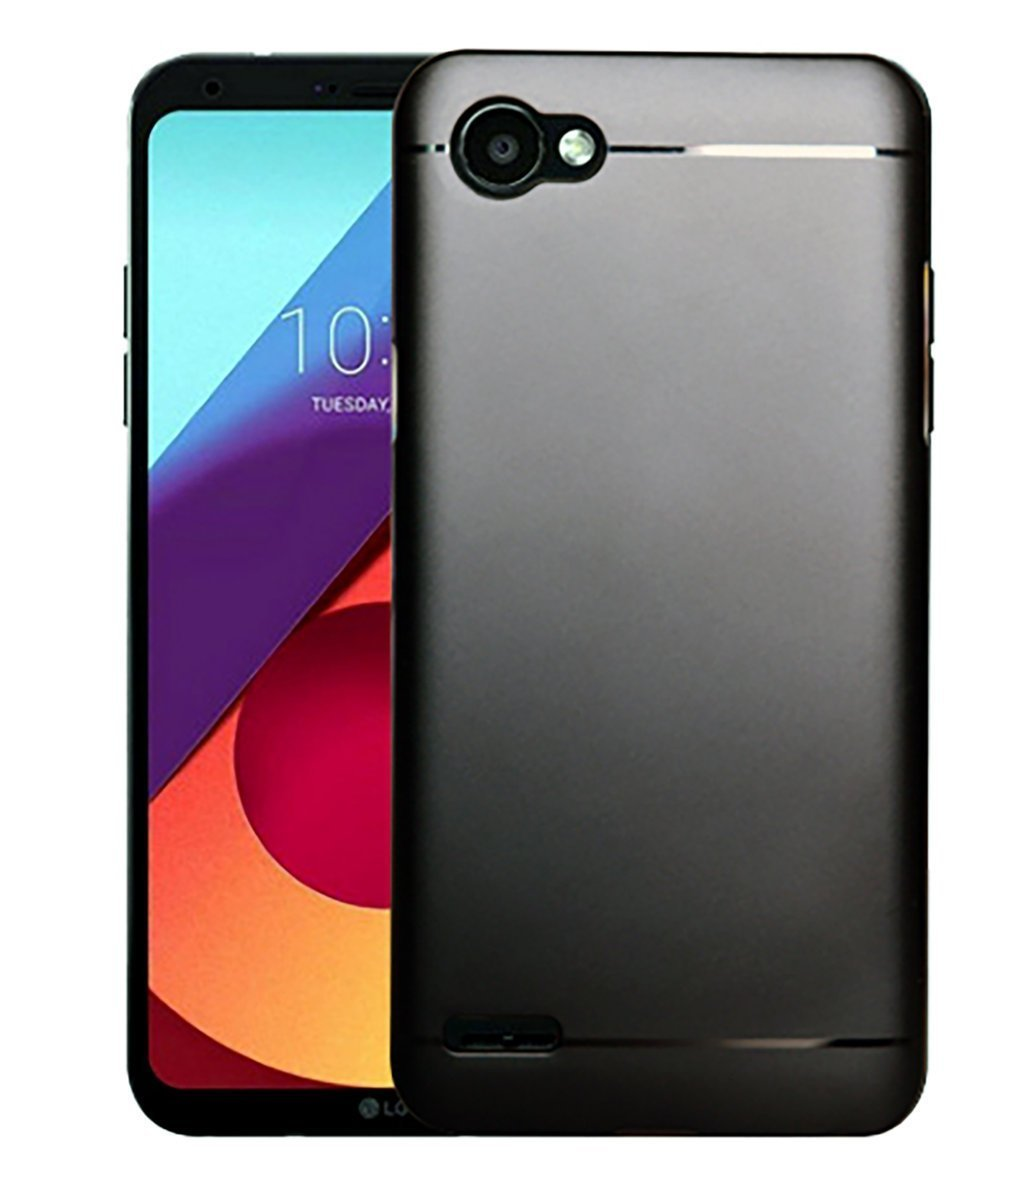 LG Q6 Silicon Soft Back Cover Protective Case (Black)